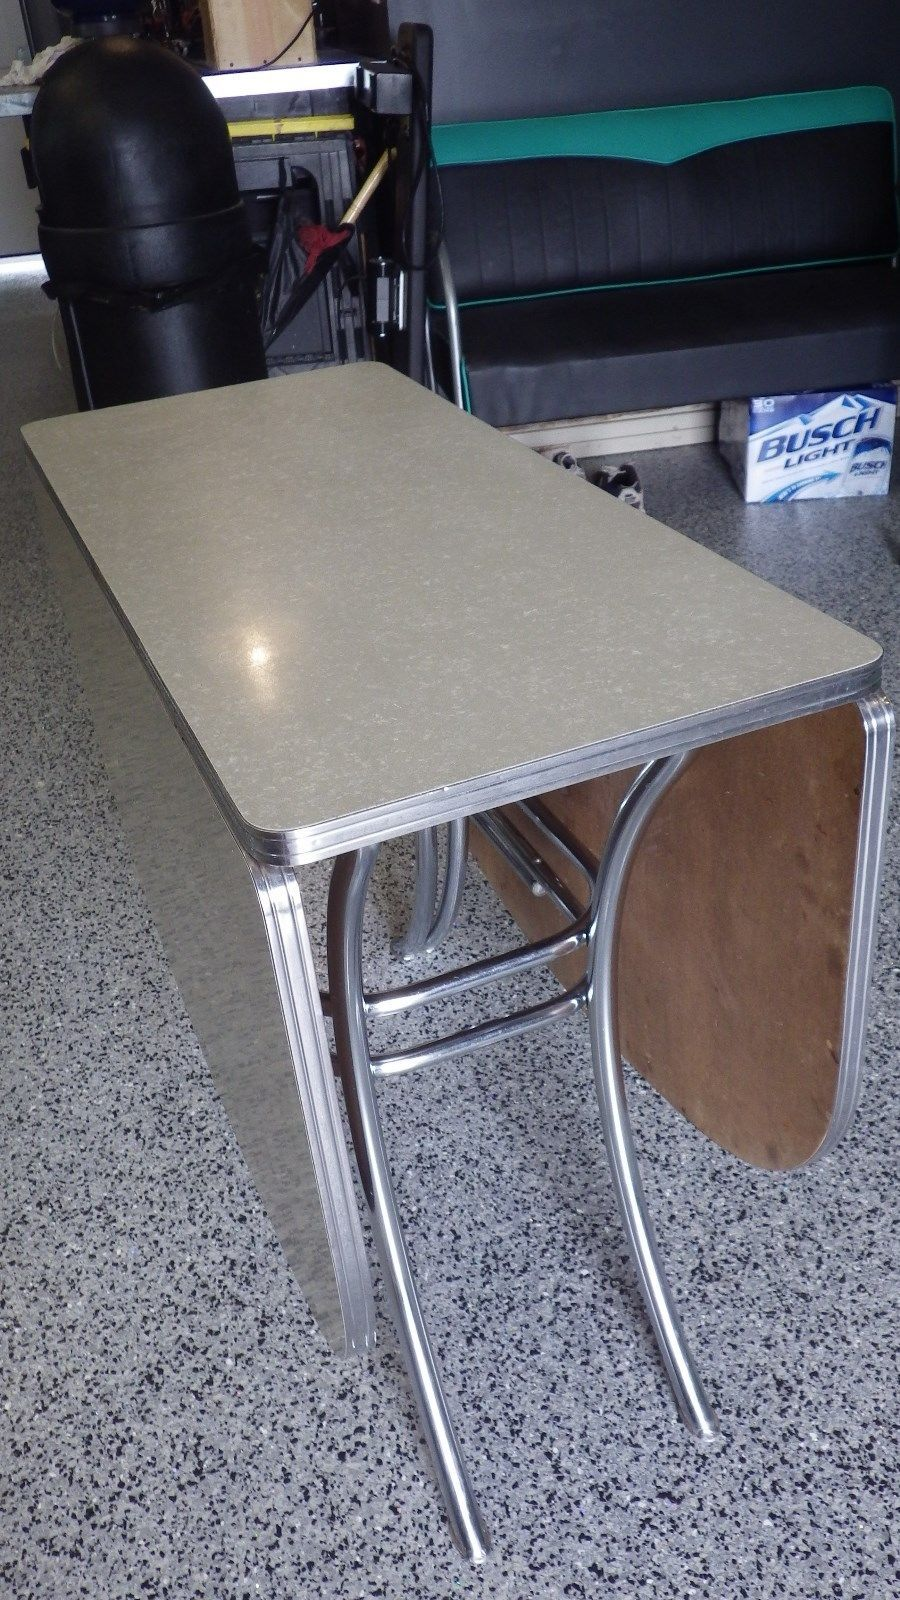 s kitchen table Vintage Lloyd Retro Gray Cracked Ice Formica Chrome Drop Leaf Kitchen Table